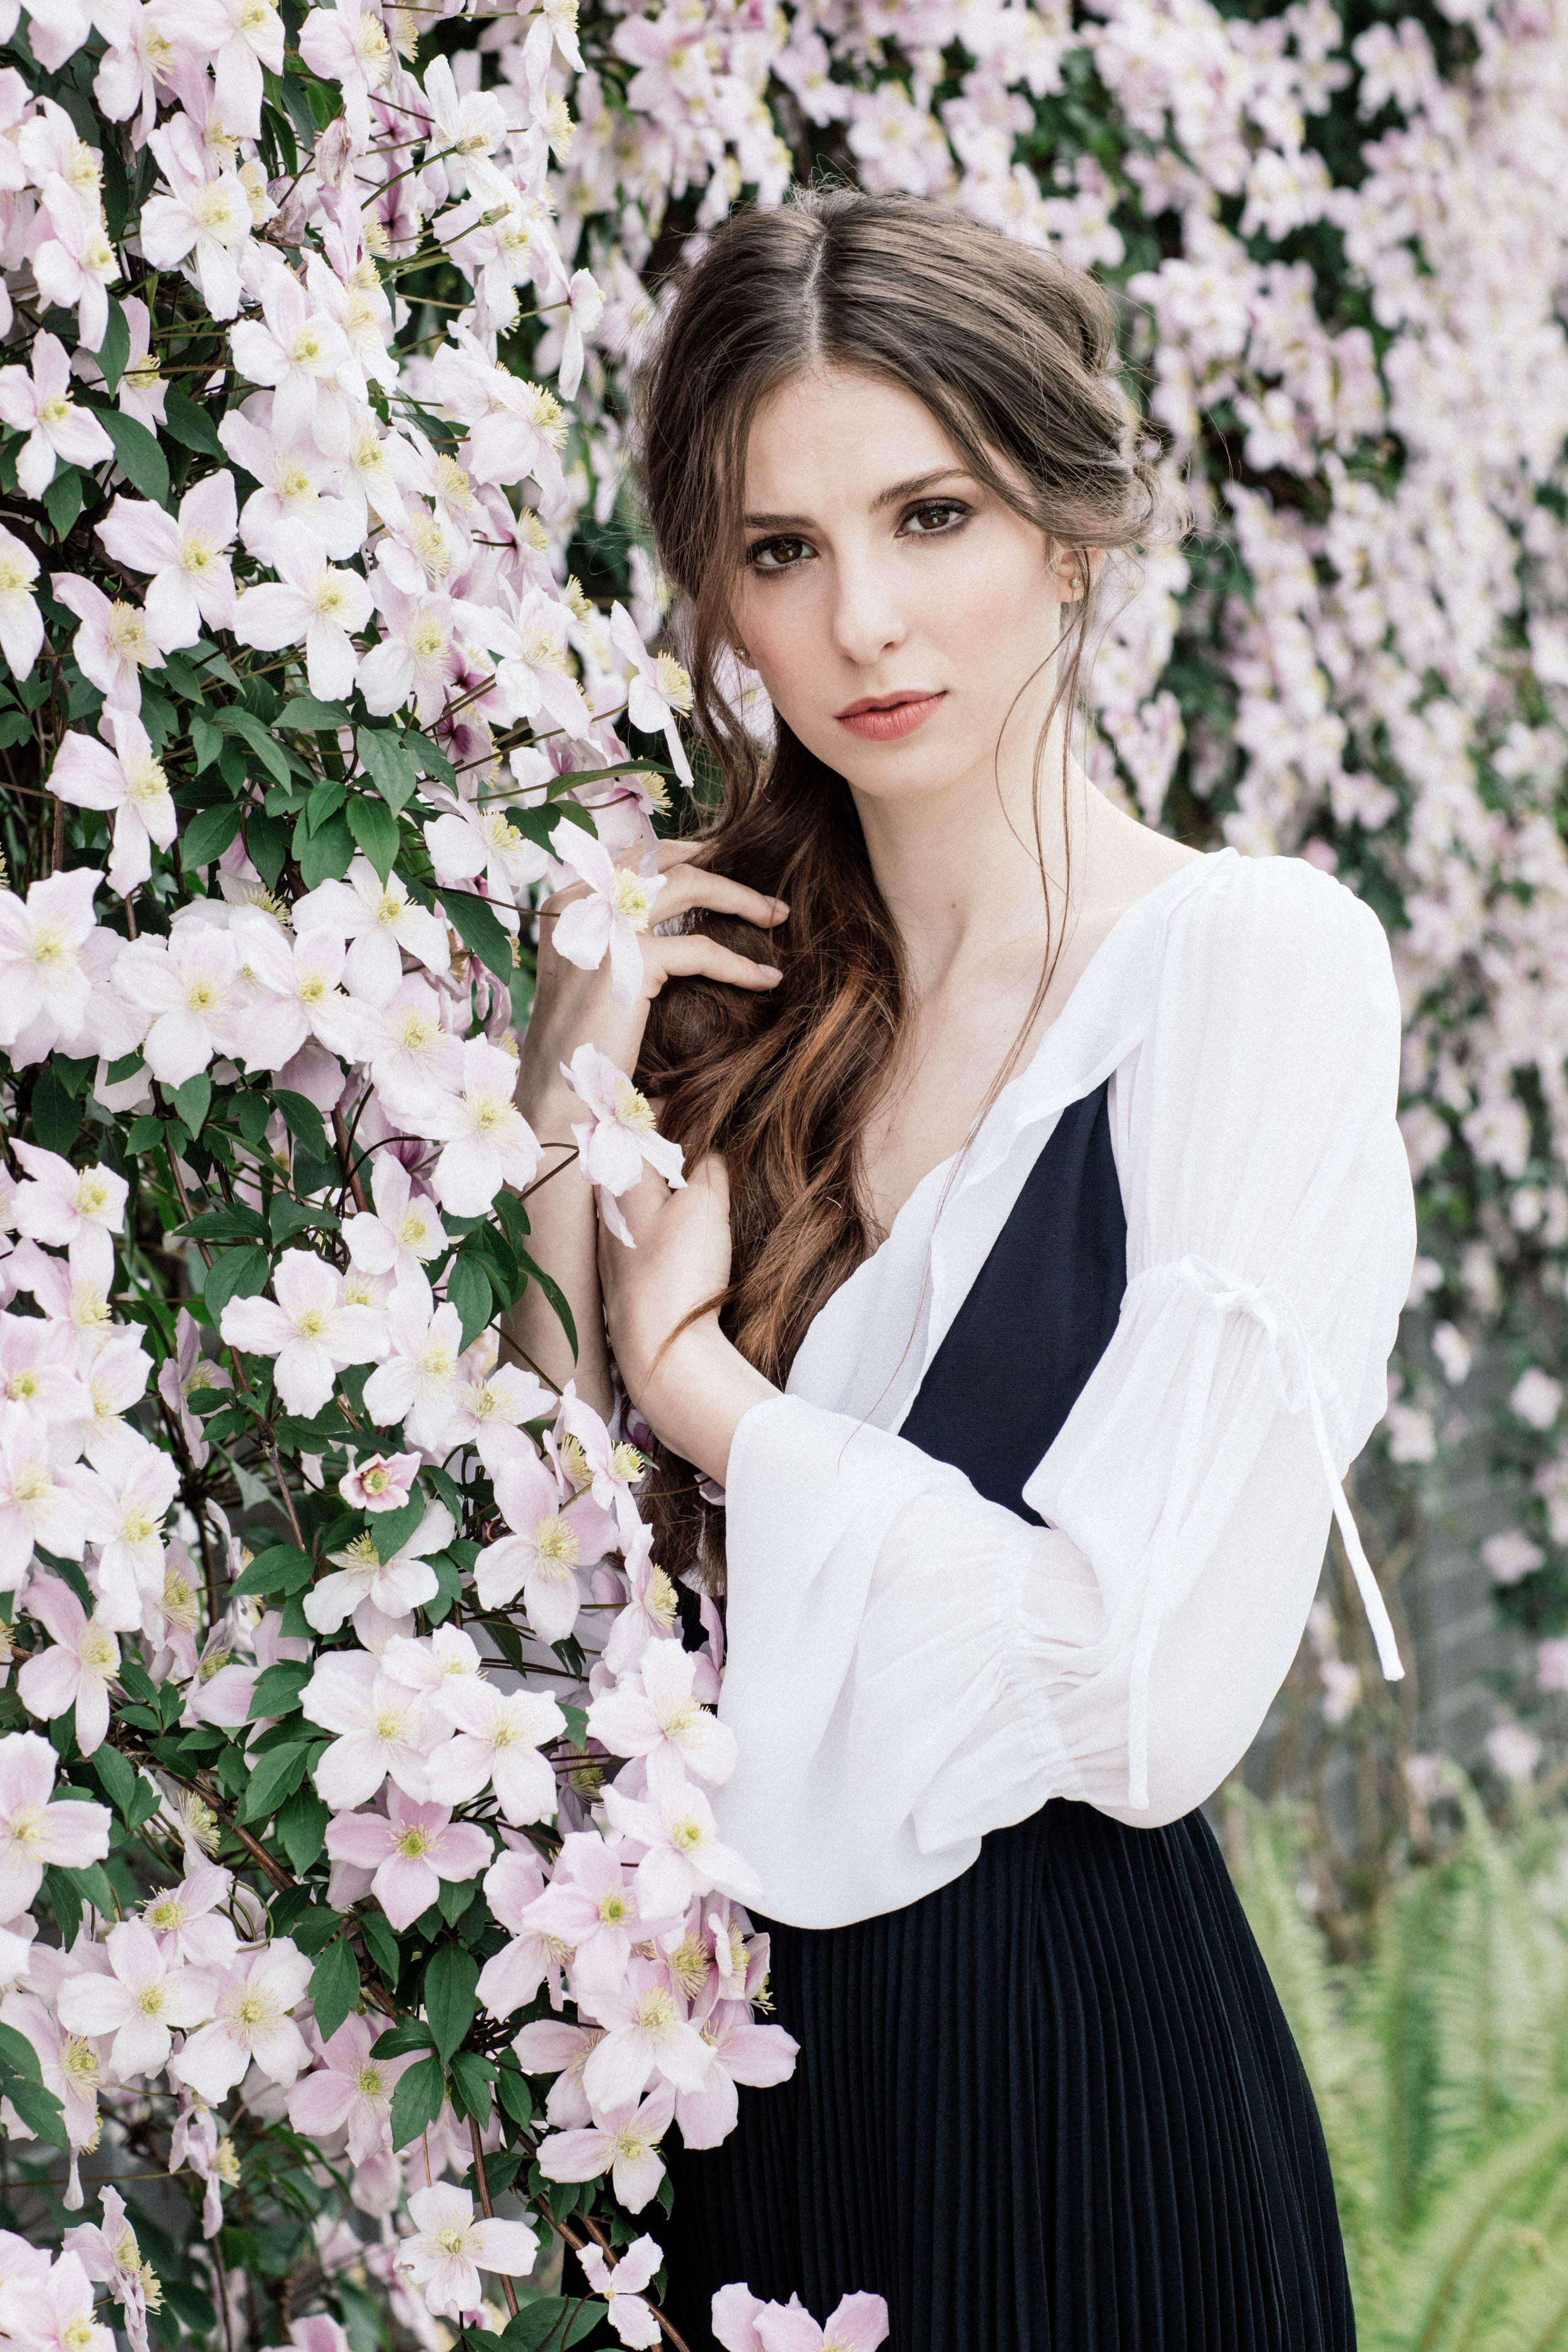 Portrait of Genevieve Buechner in a white shirt and black dress posing by a flower bush.